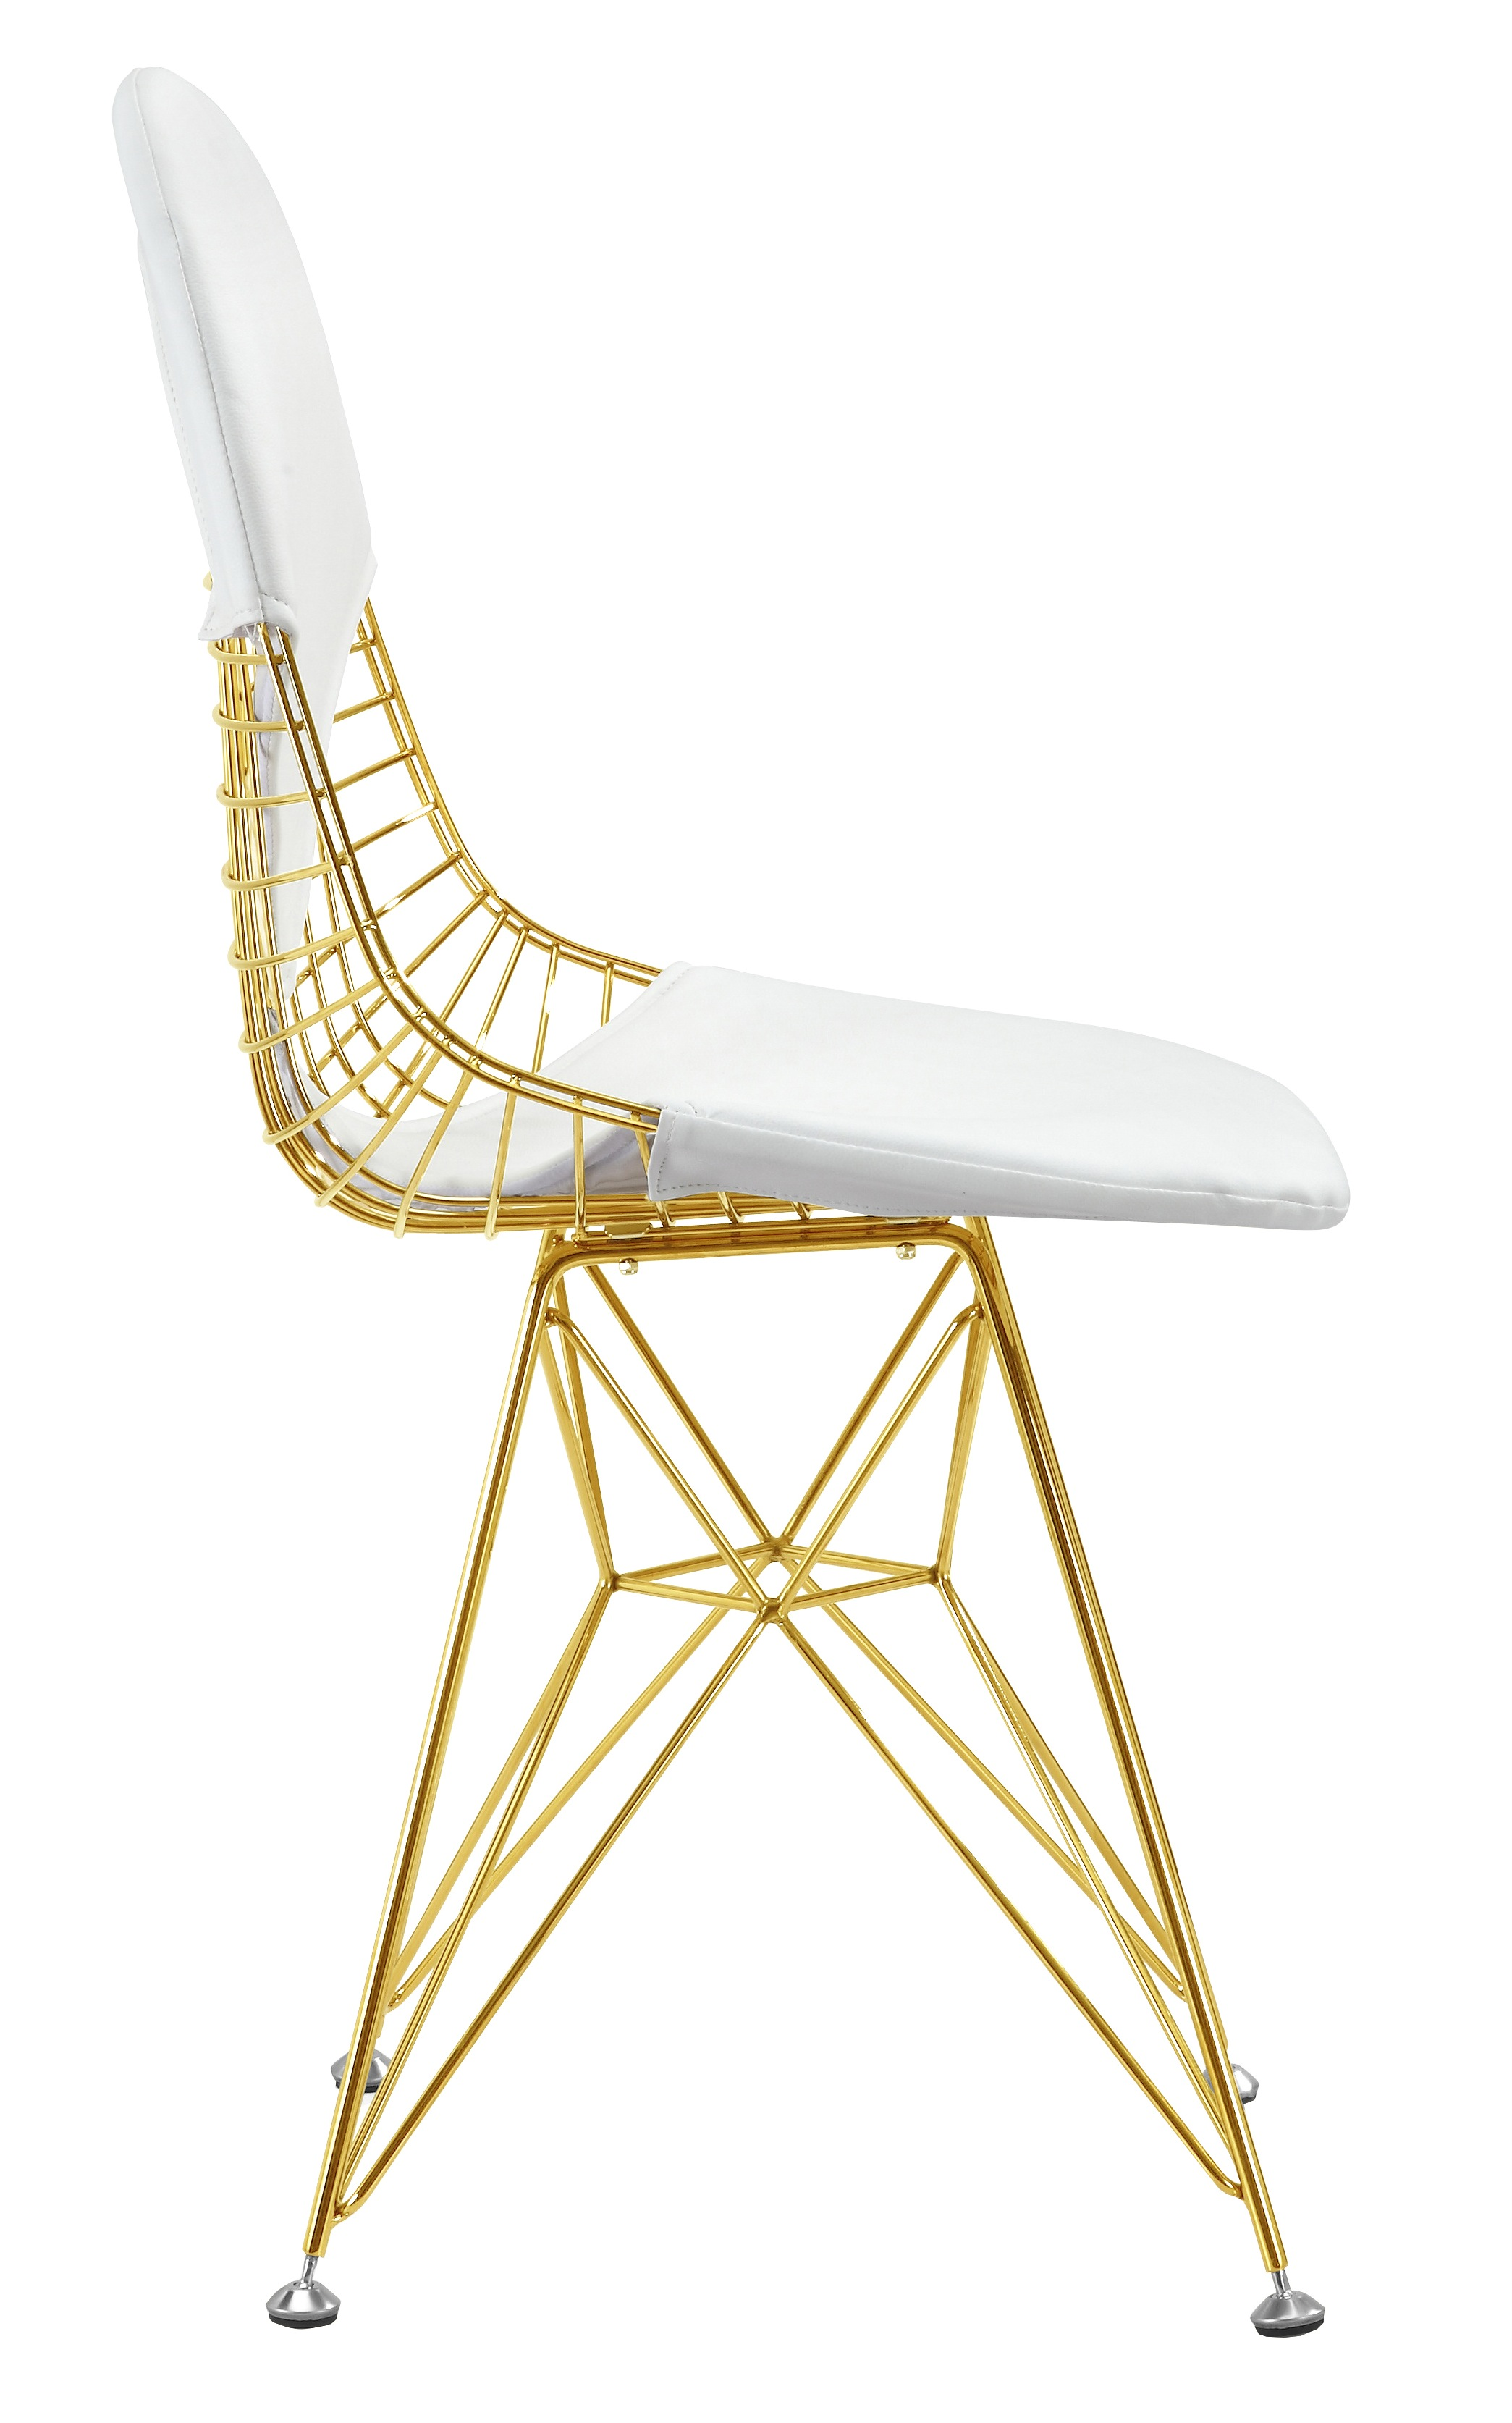 edition chair stunning pantone mini gold in chairs panton metallic are limited